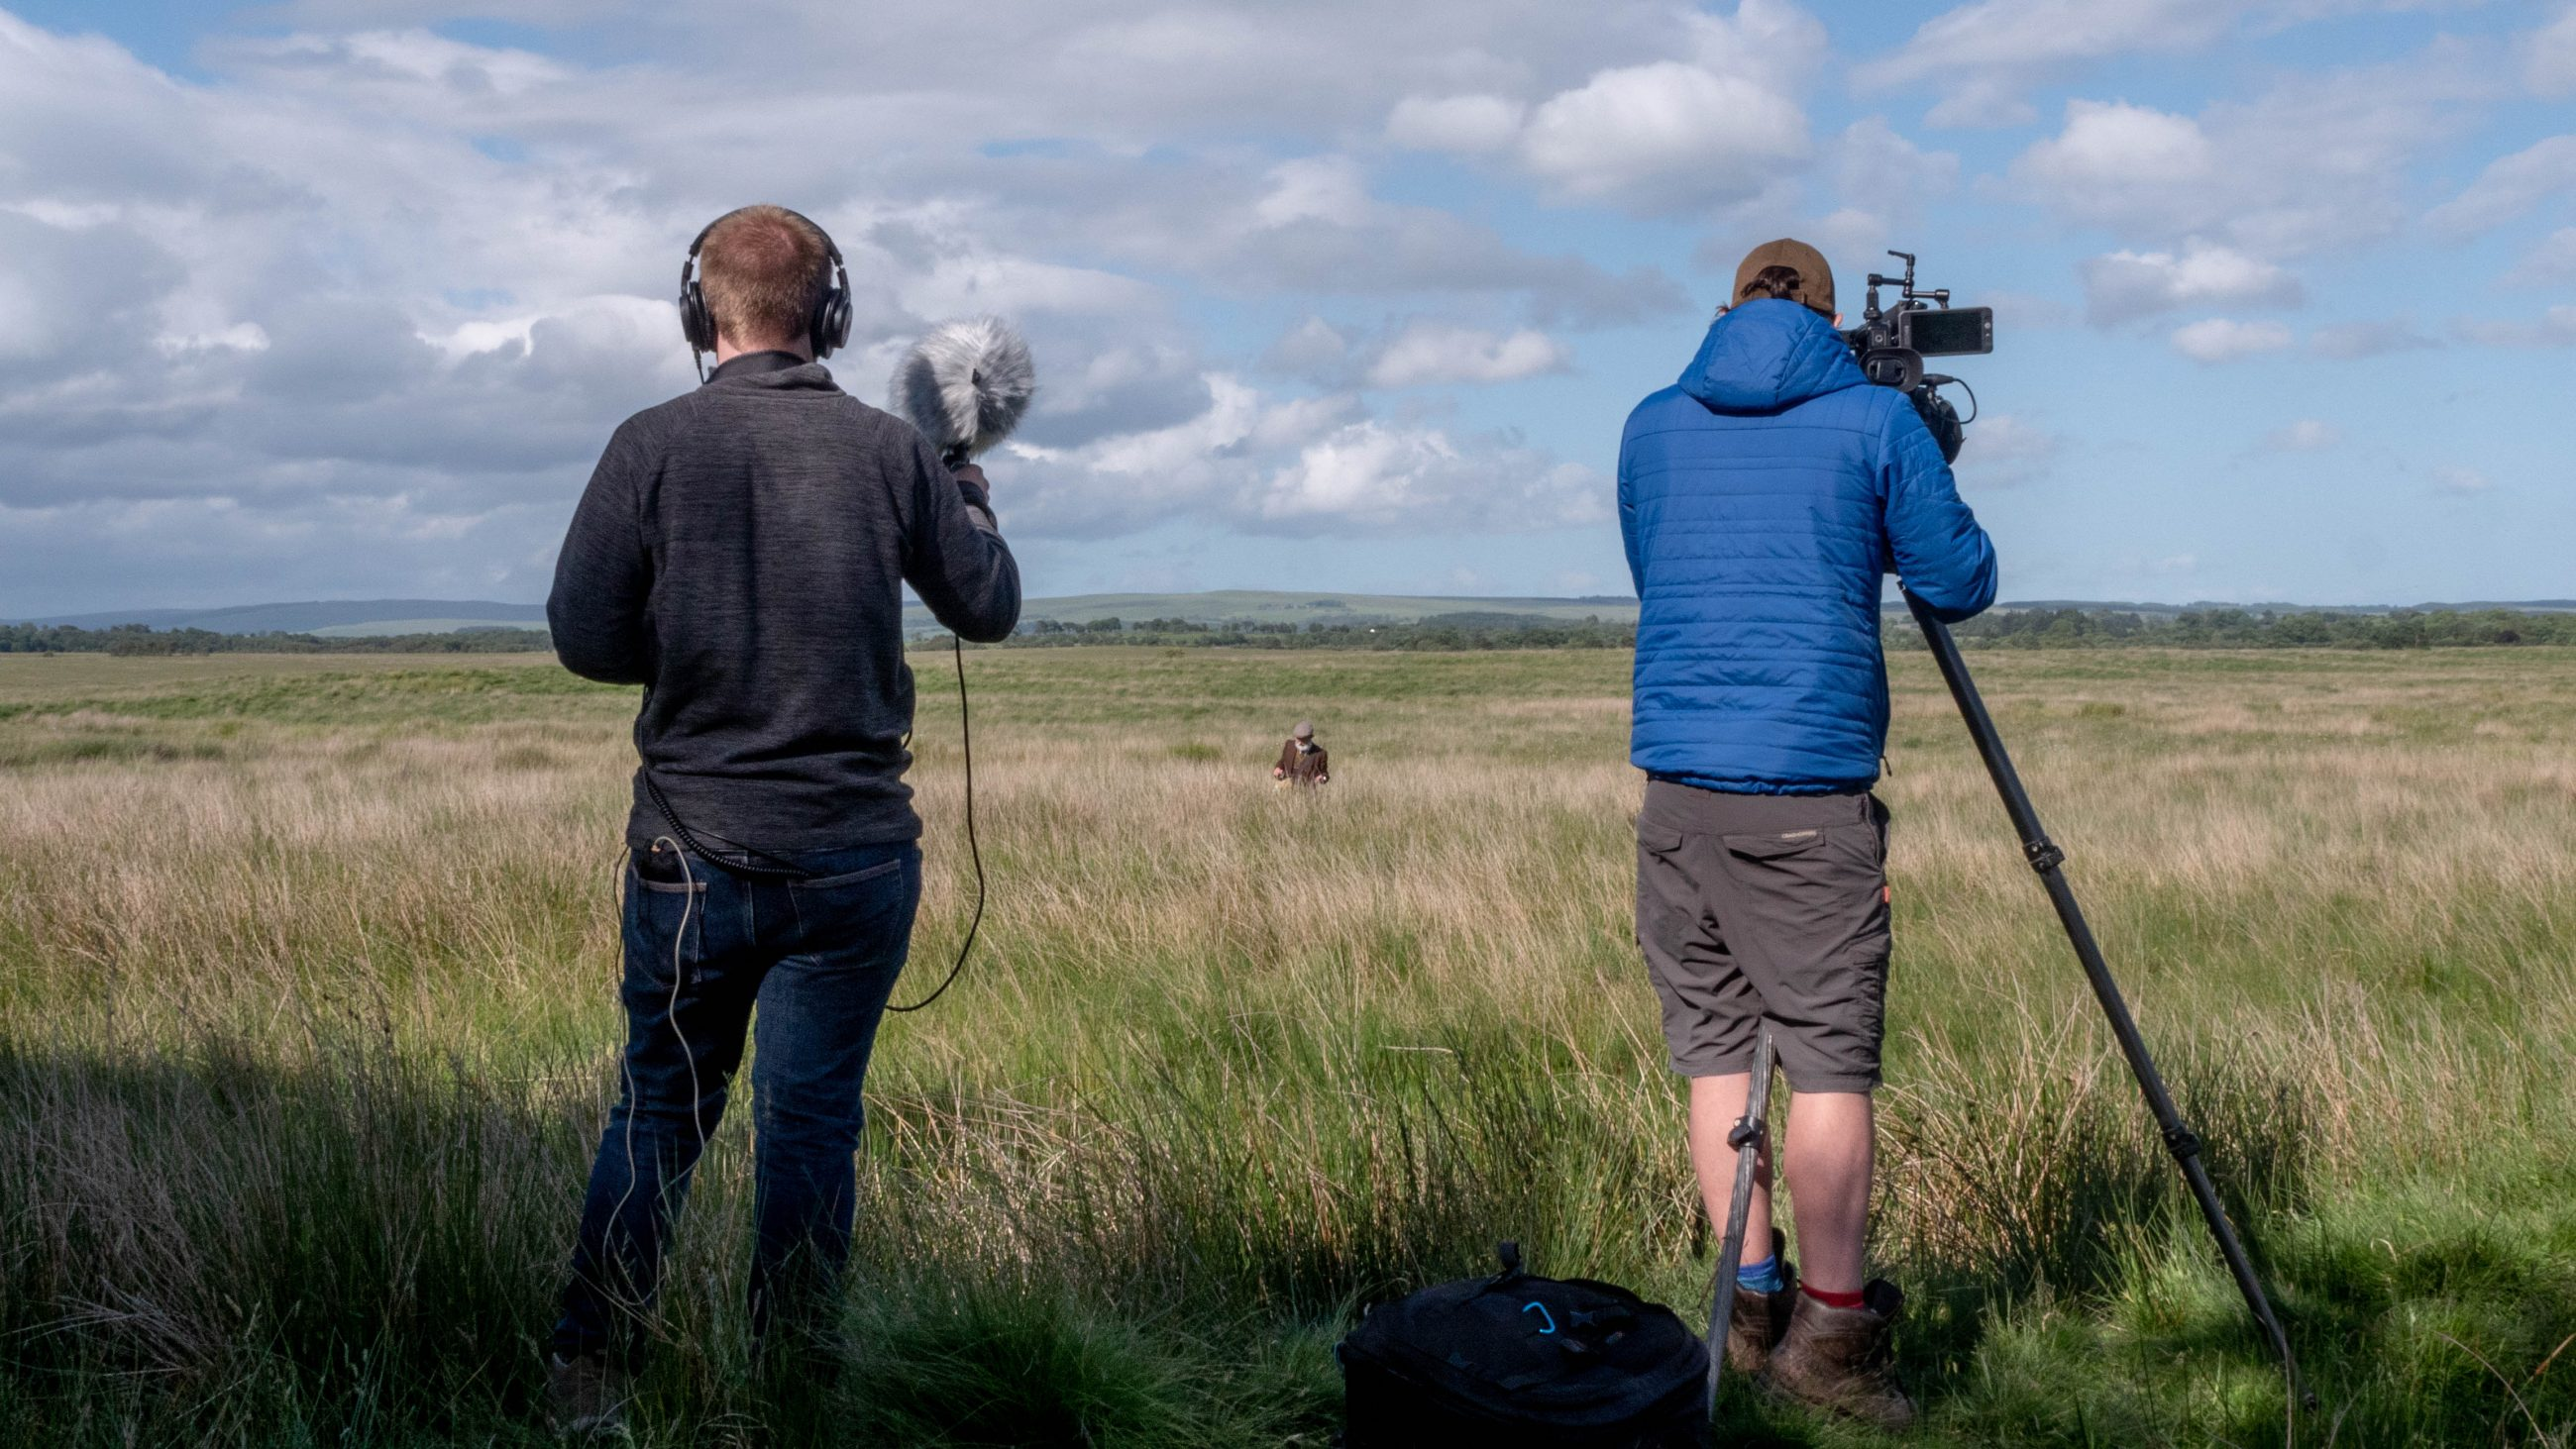 Filming in more fields with Melvyn Rawlinson, Peter Baumann (Sound Recordist) and Benjamin Sadd (Director of Photography) - Behind the Scenes of Carbon Farmer